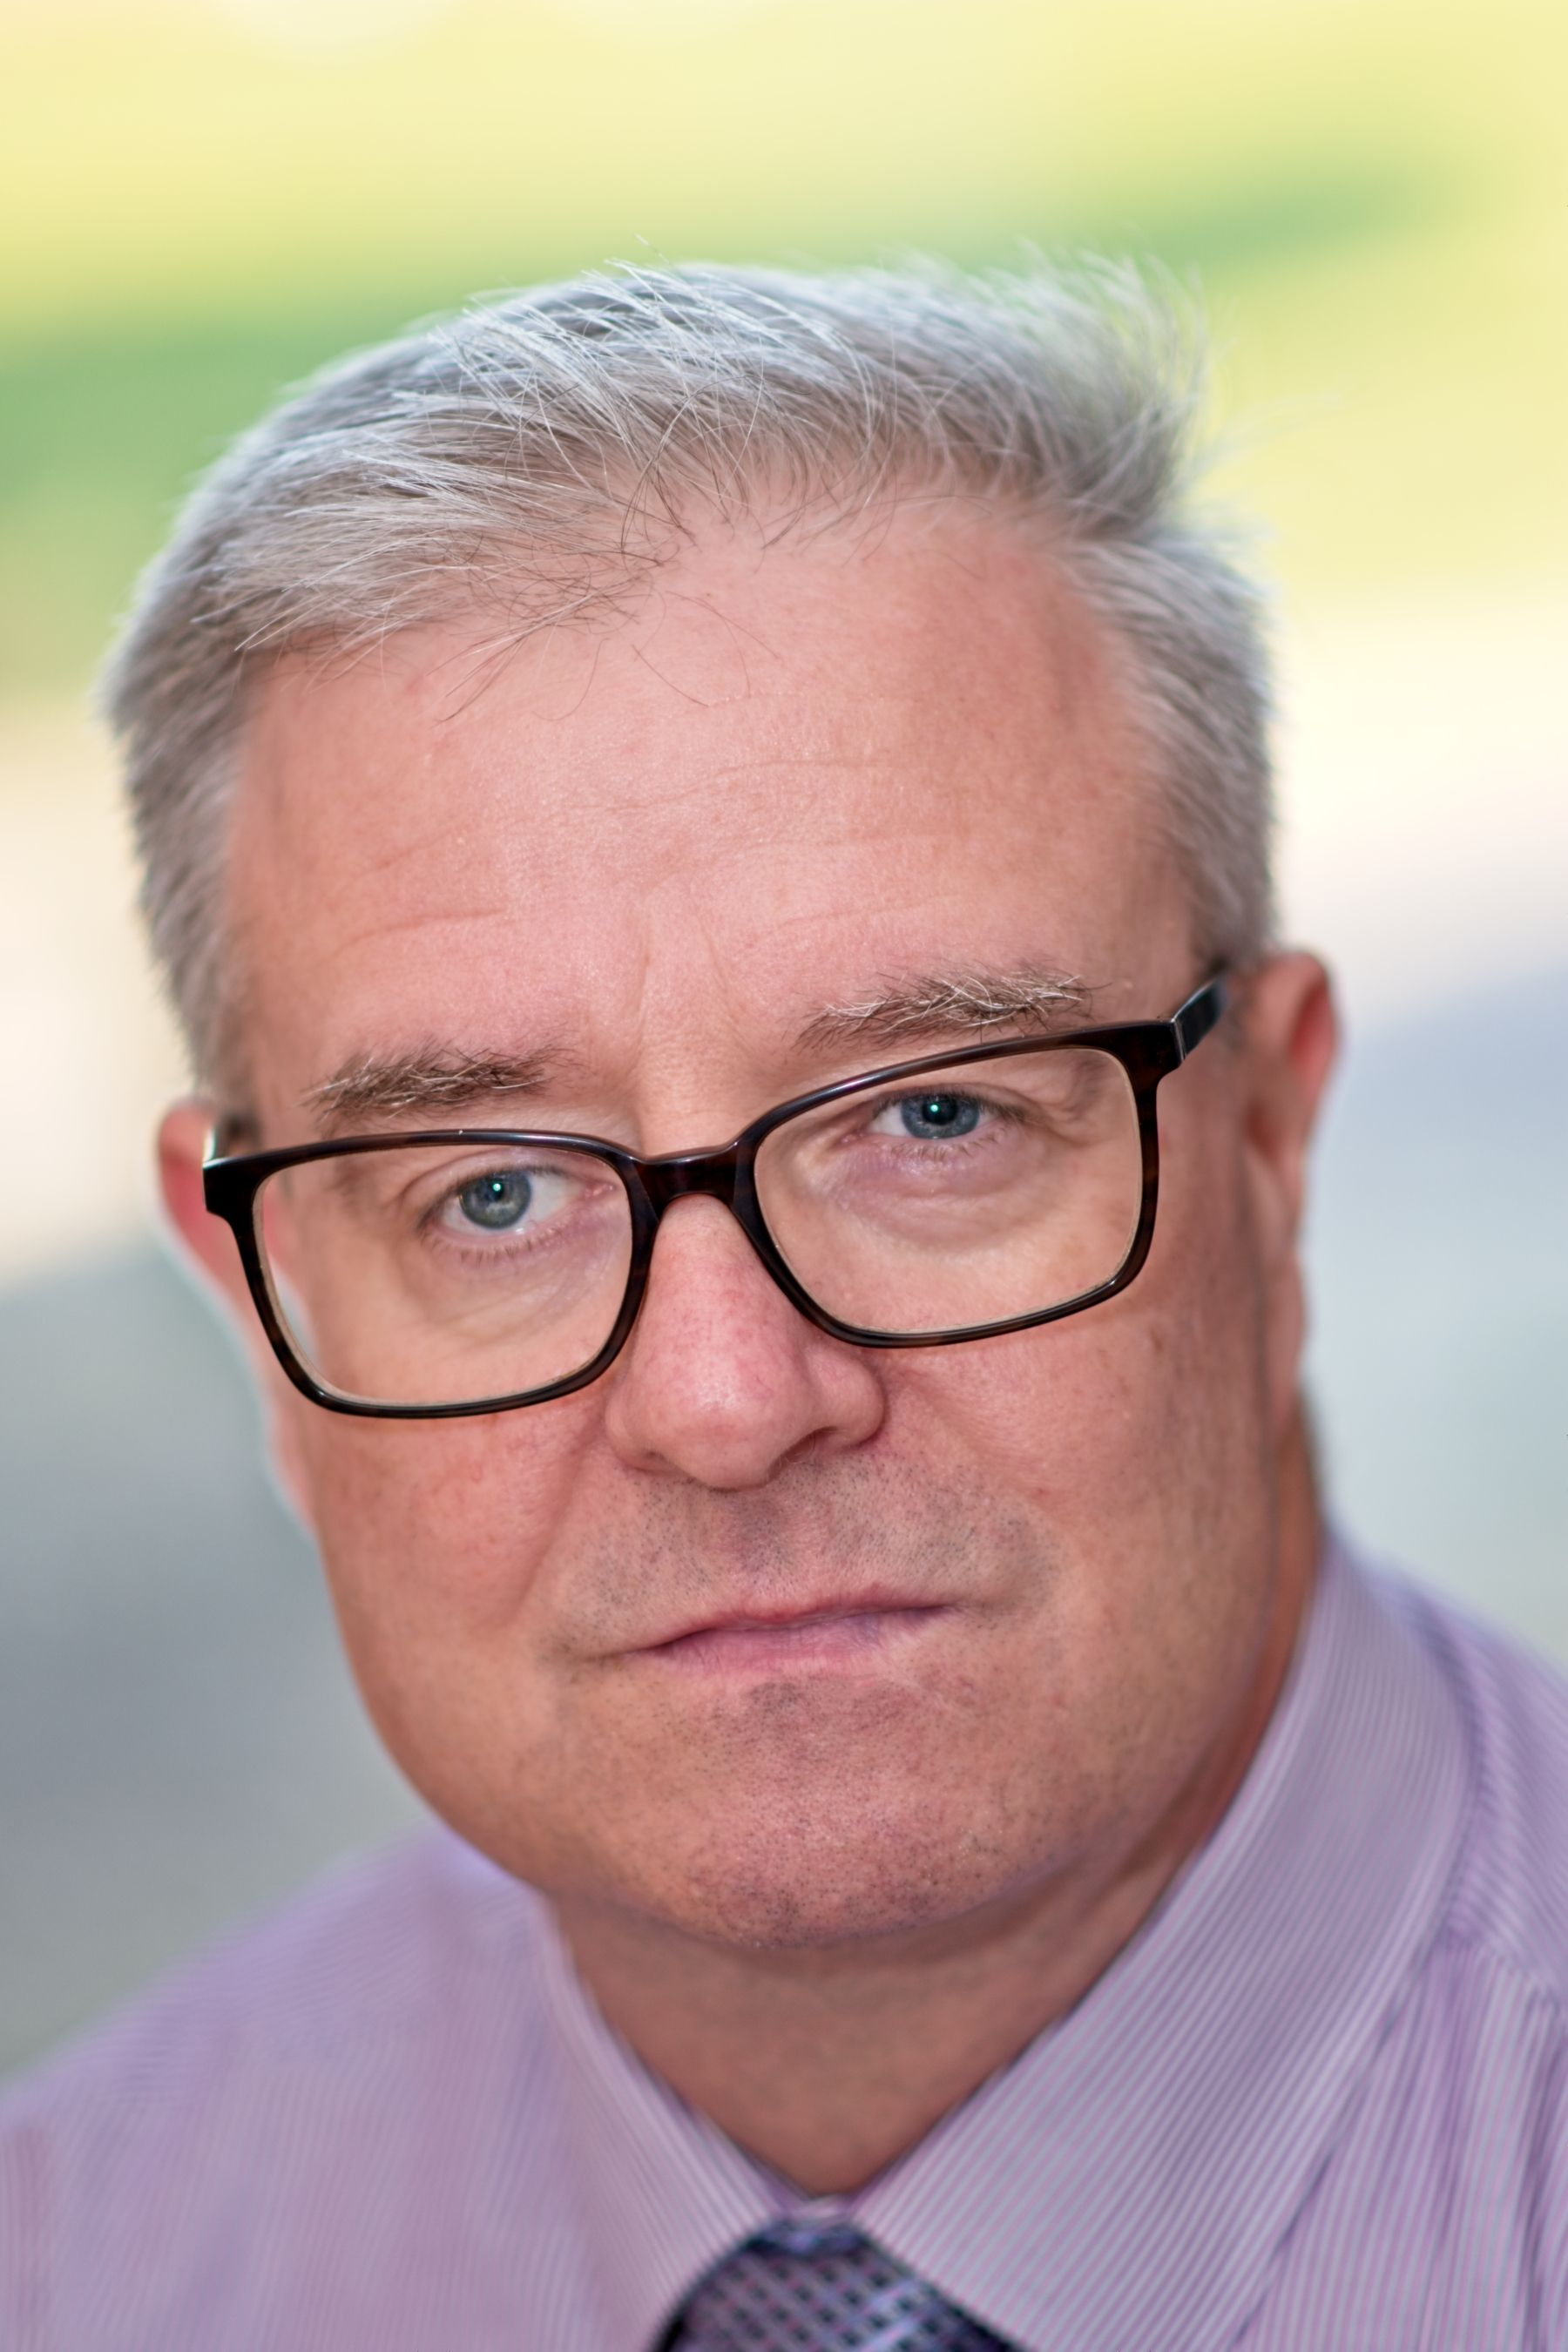 male headshot, portrait or for personal or business branding use photograph by dh photo in warwickshire